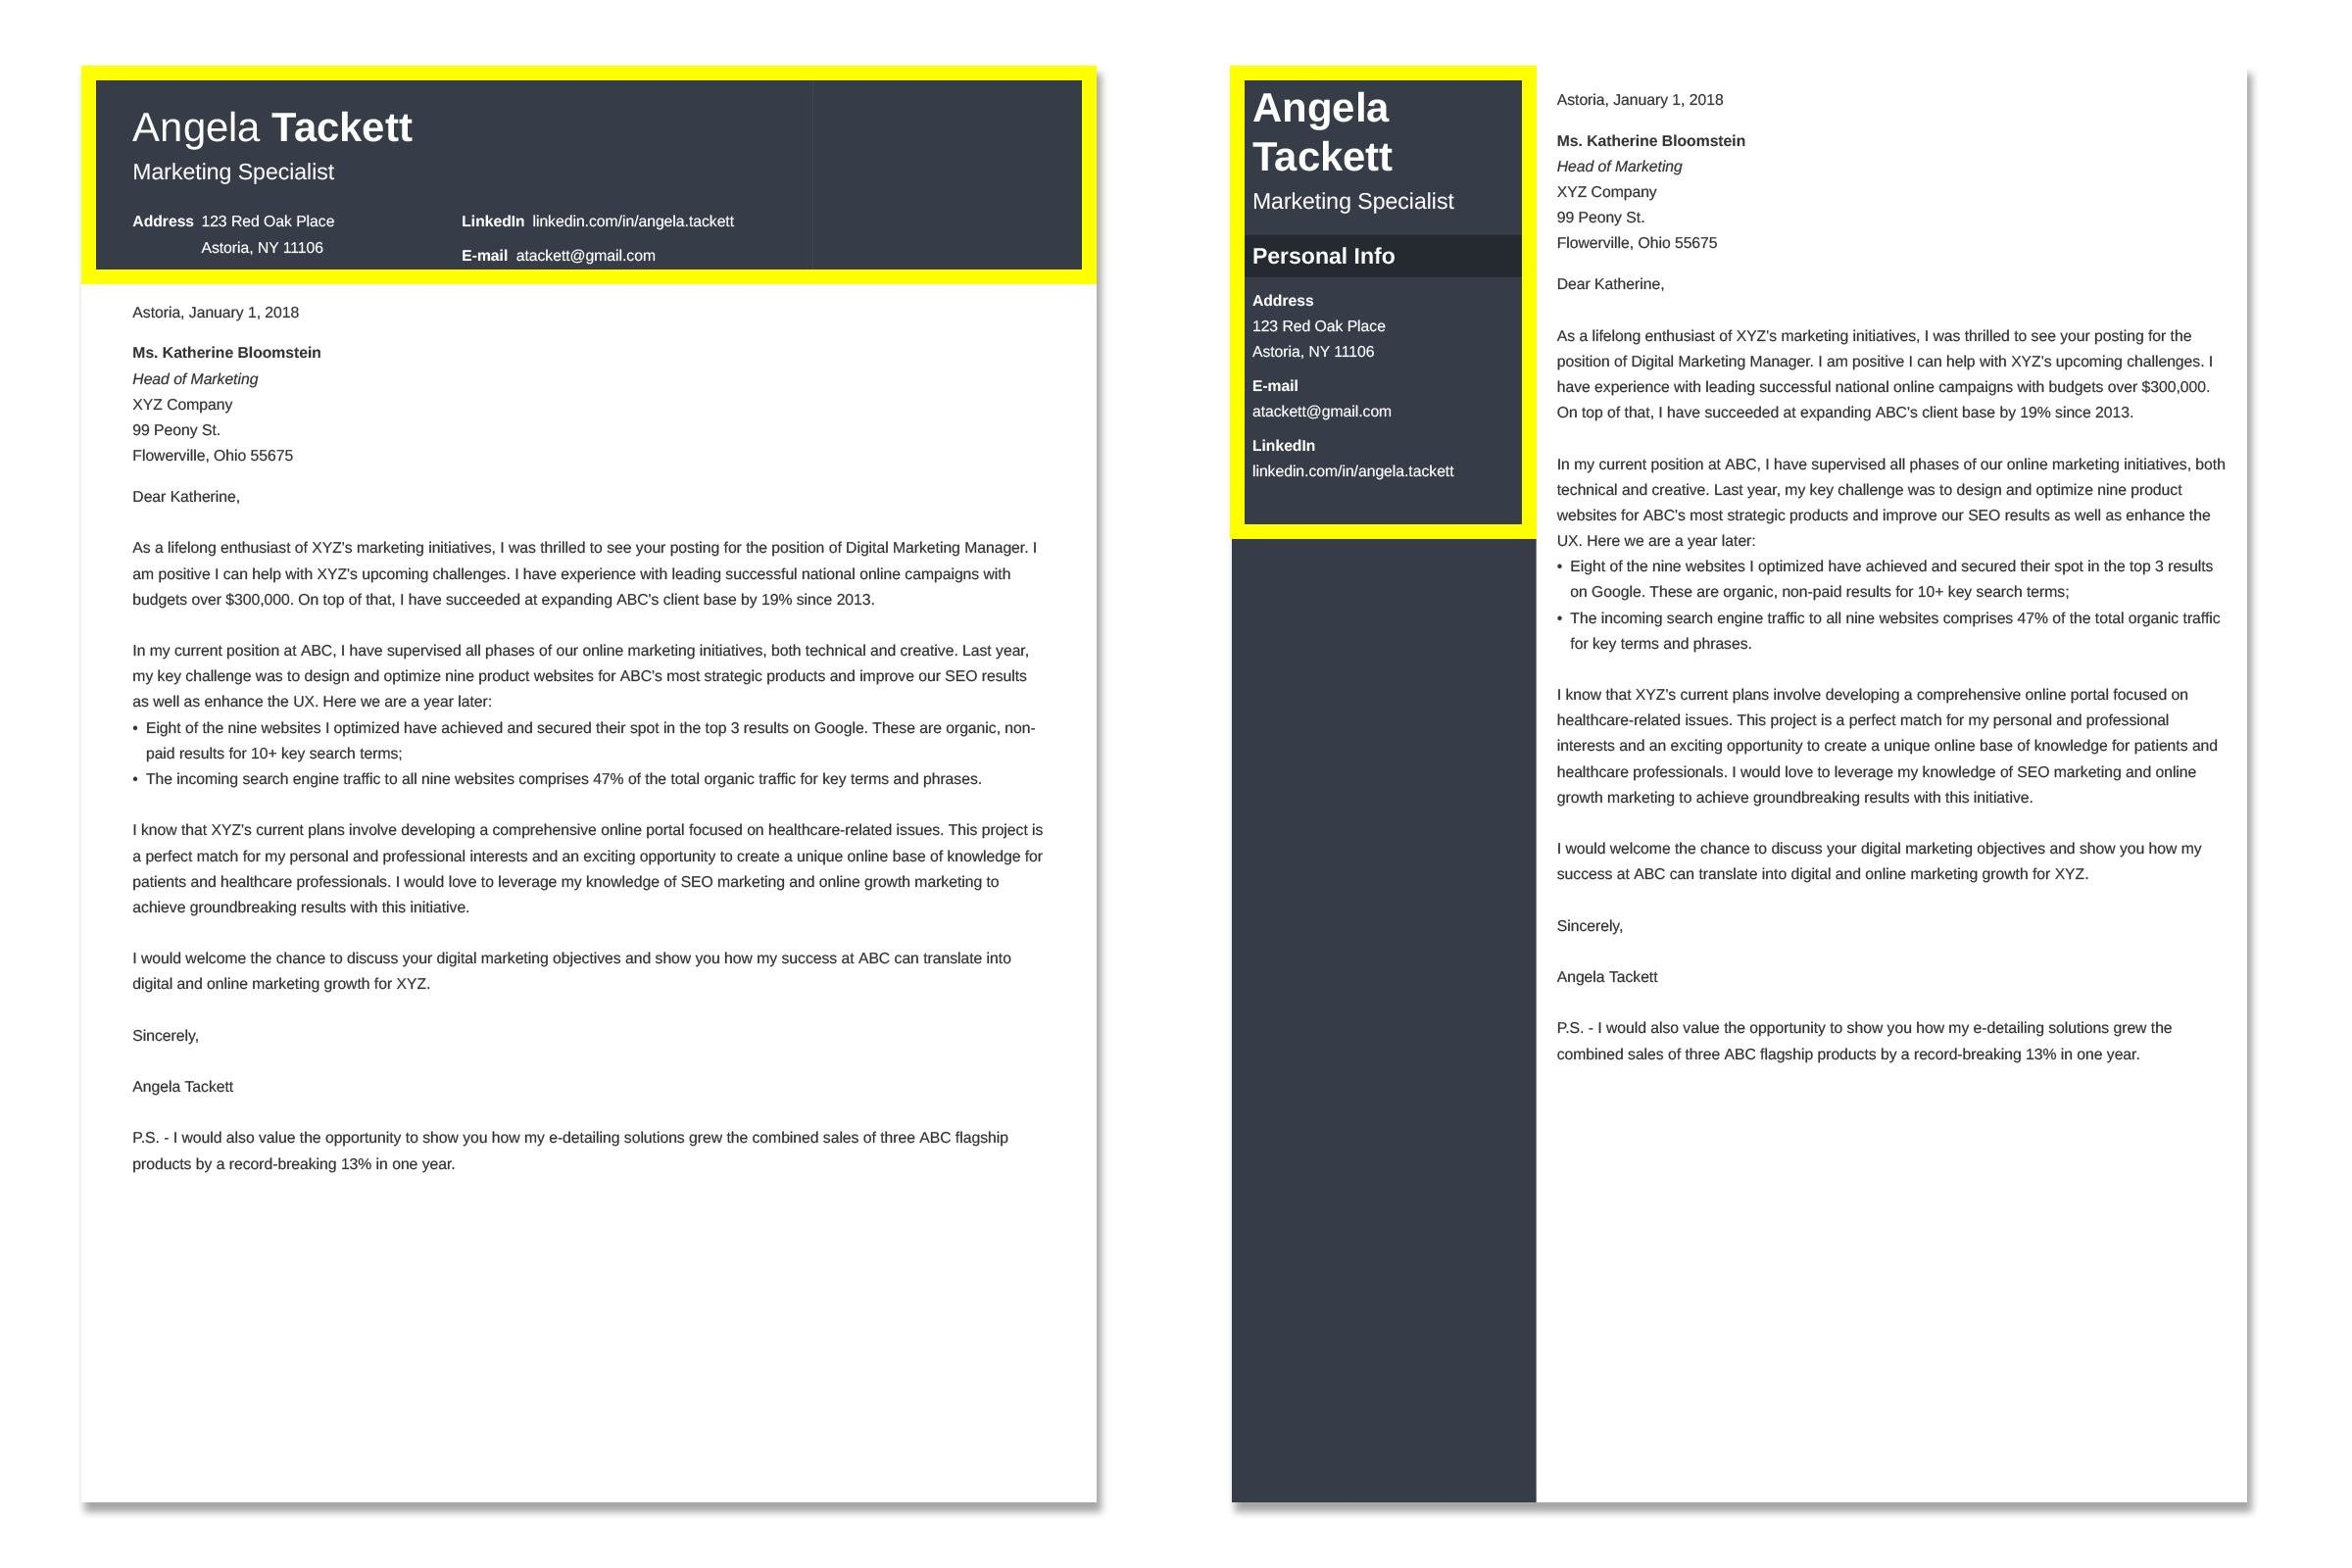 Administrative Assistant Cover Letter: Sample & Guide [20+ ...